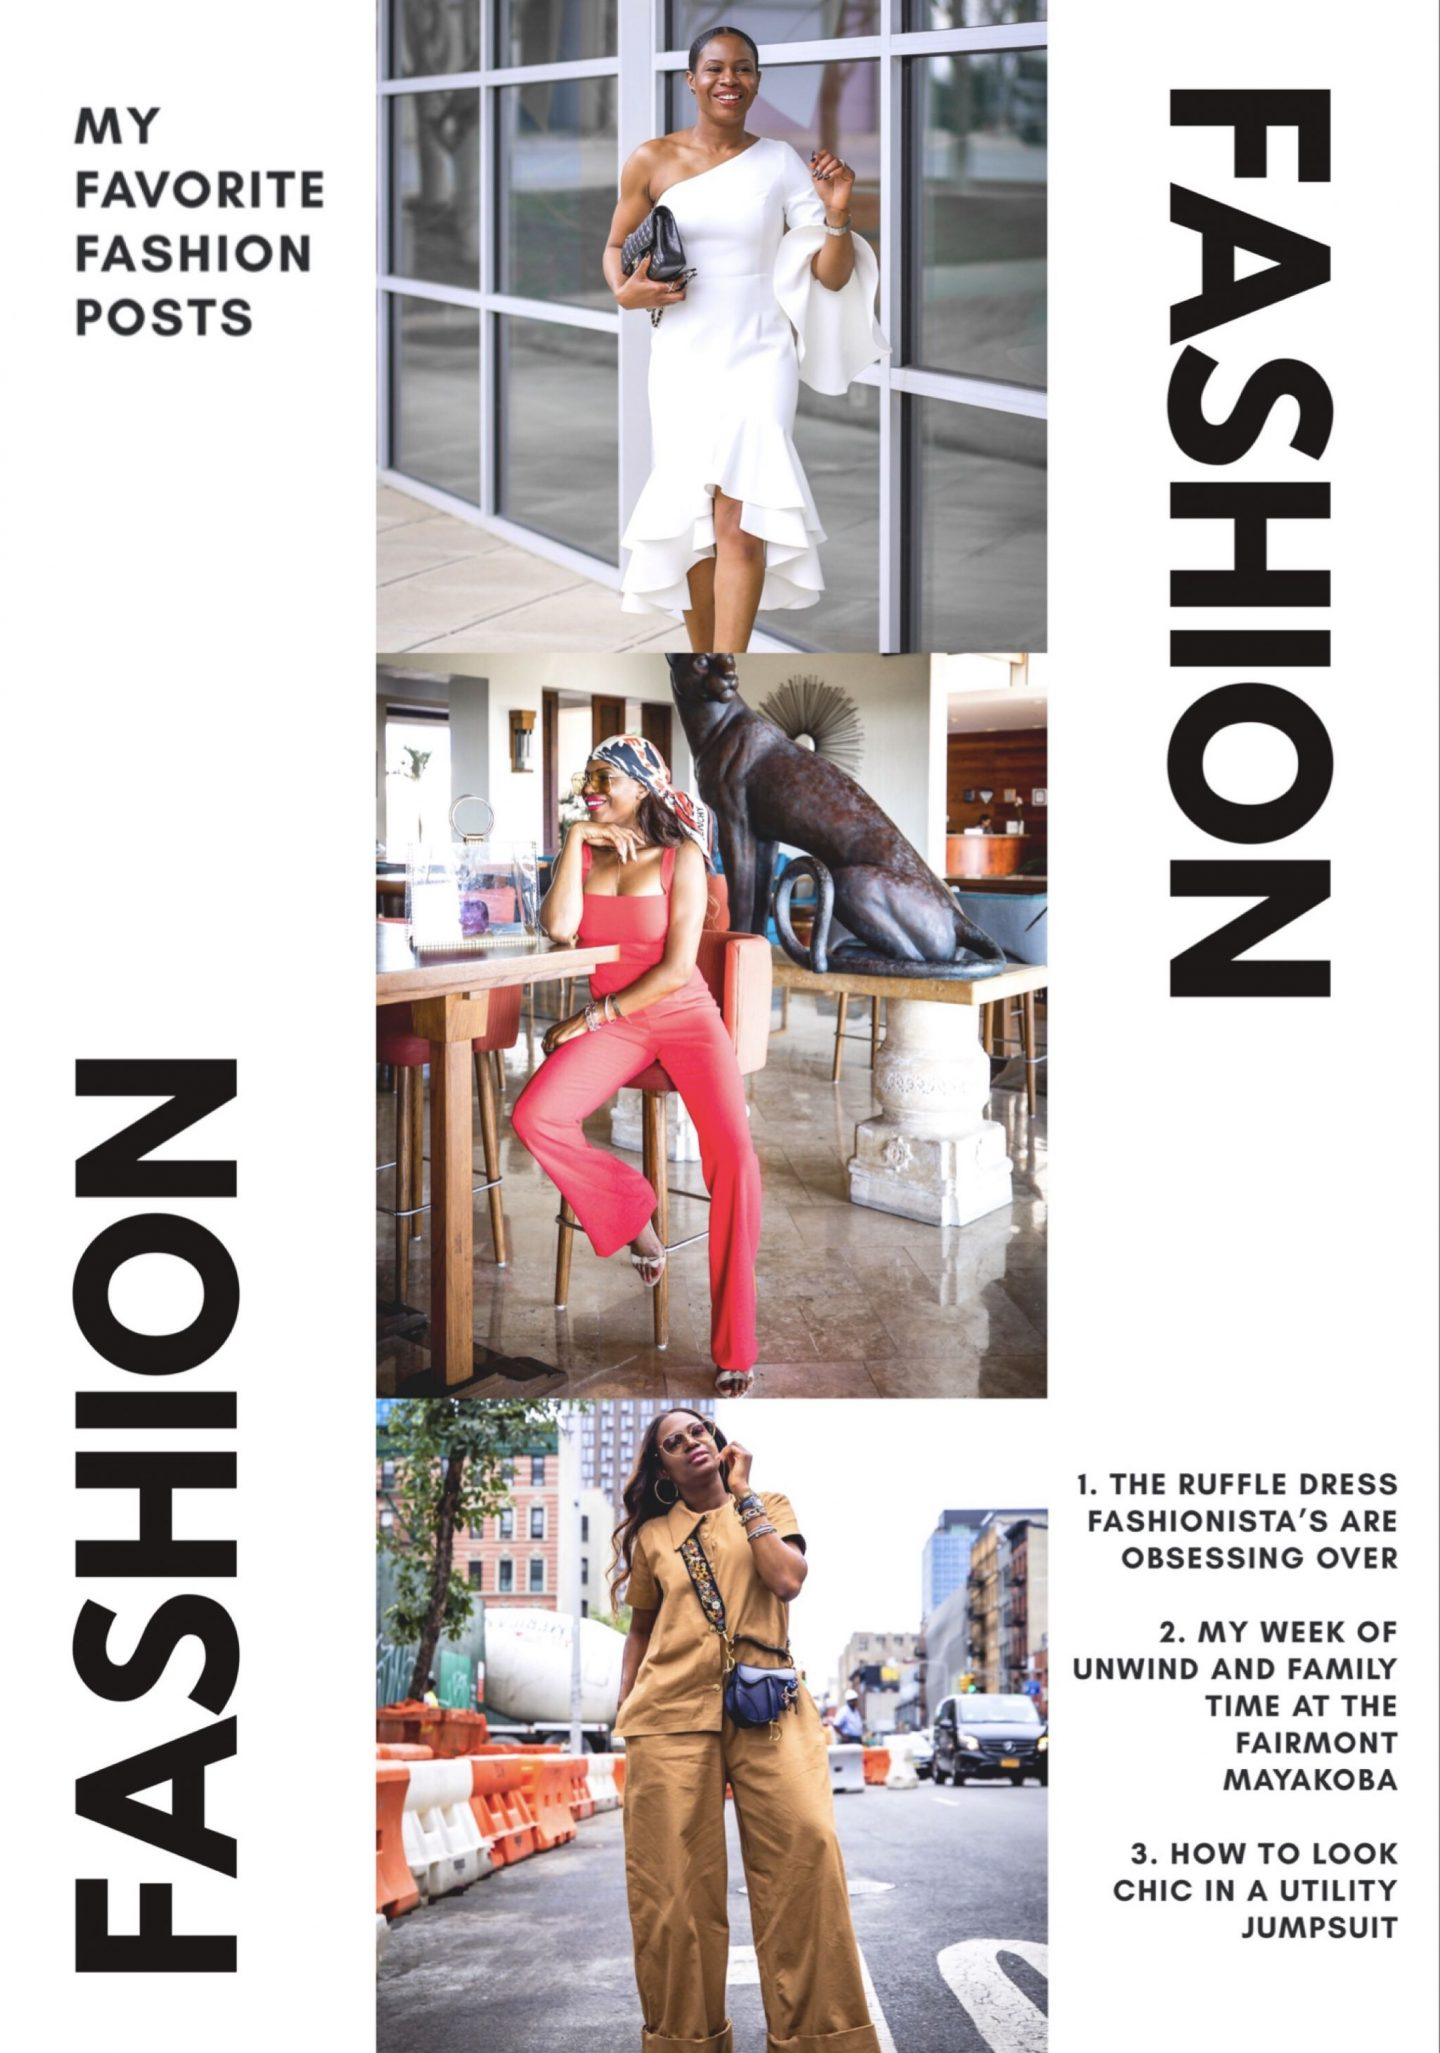 Best outfits from 2018. Top Atlanta fashion blogger Monica Awe-Etuk reviews collaborations and top post in 2018 and gives final notes on the year and what to expect in the new year